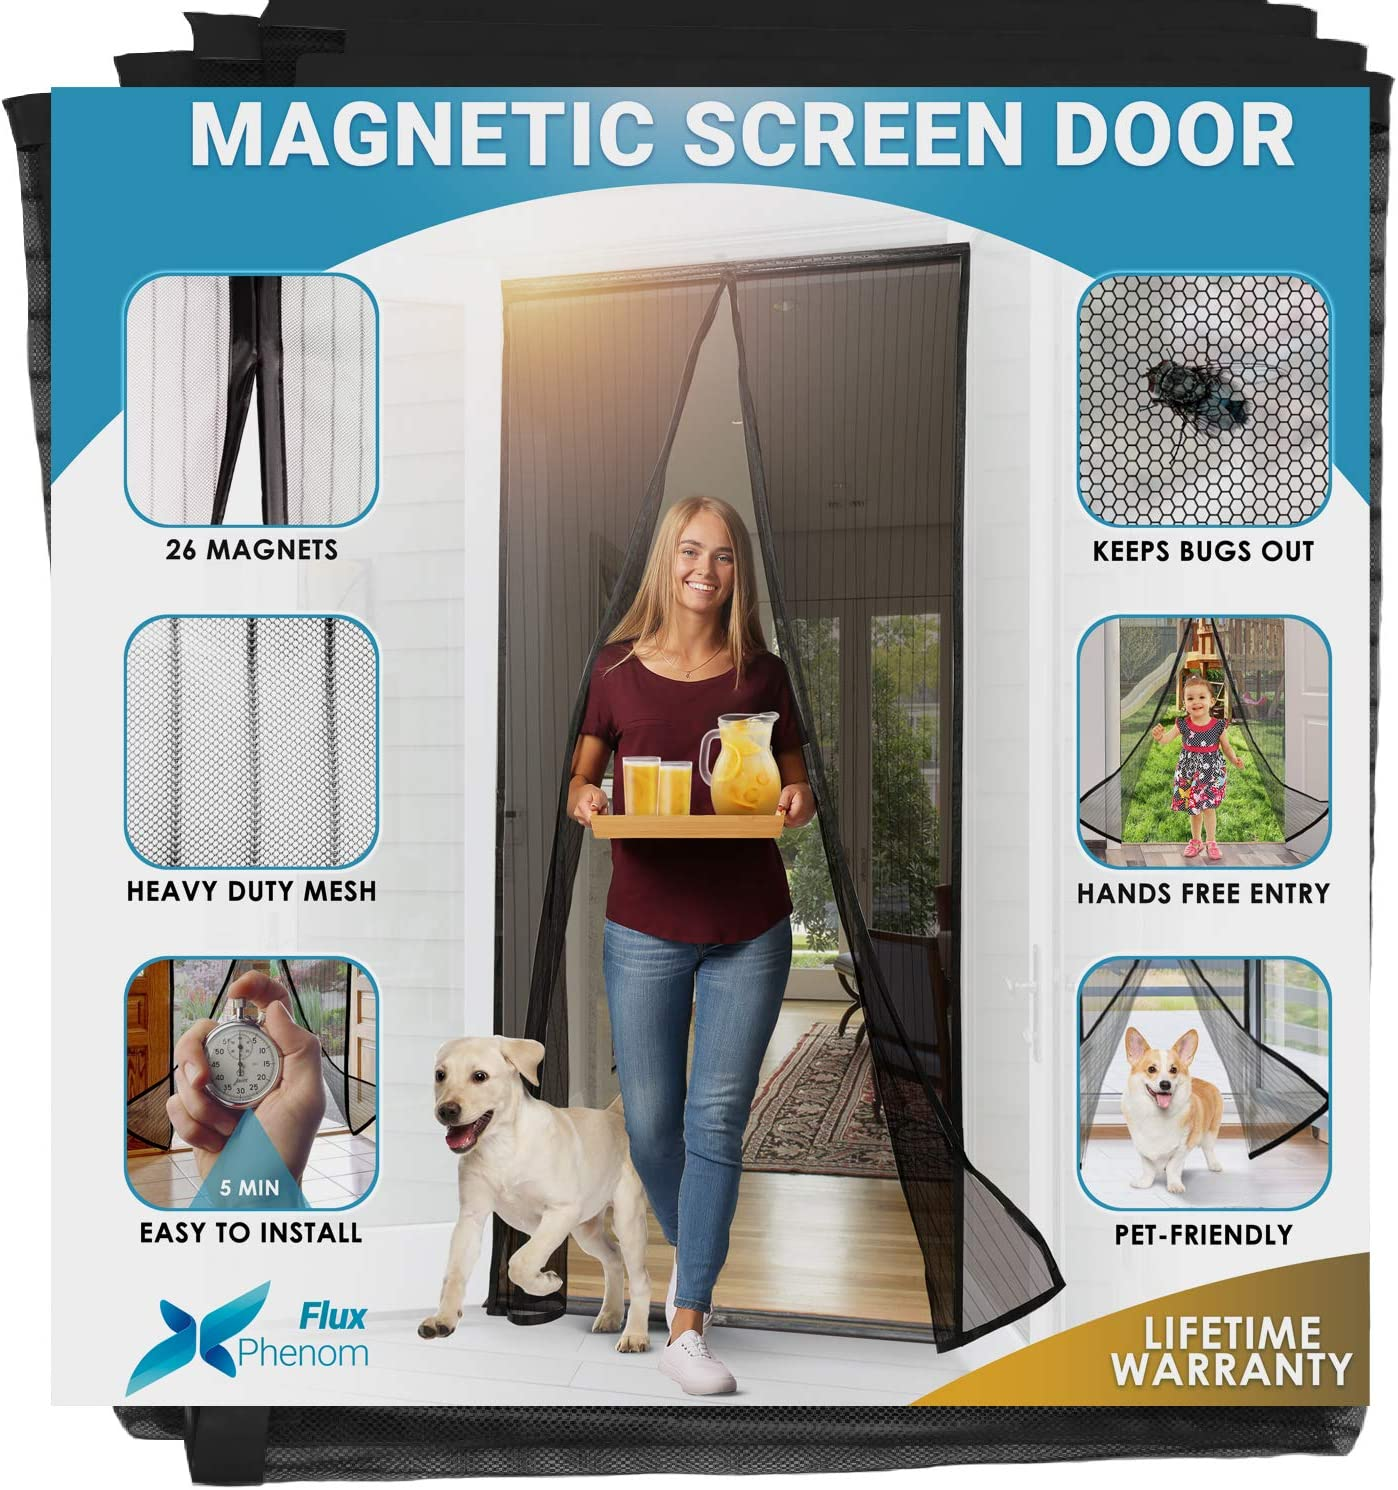 Flux Phenom Reinforced Magnetic Screen Door - Fits Doors up to 38 x 82 Inches (Black) - -